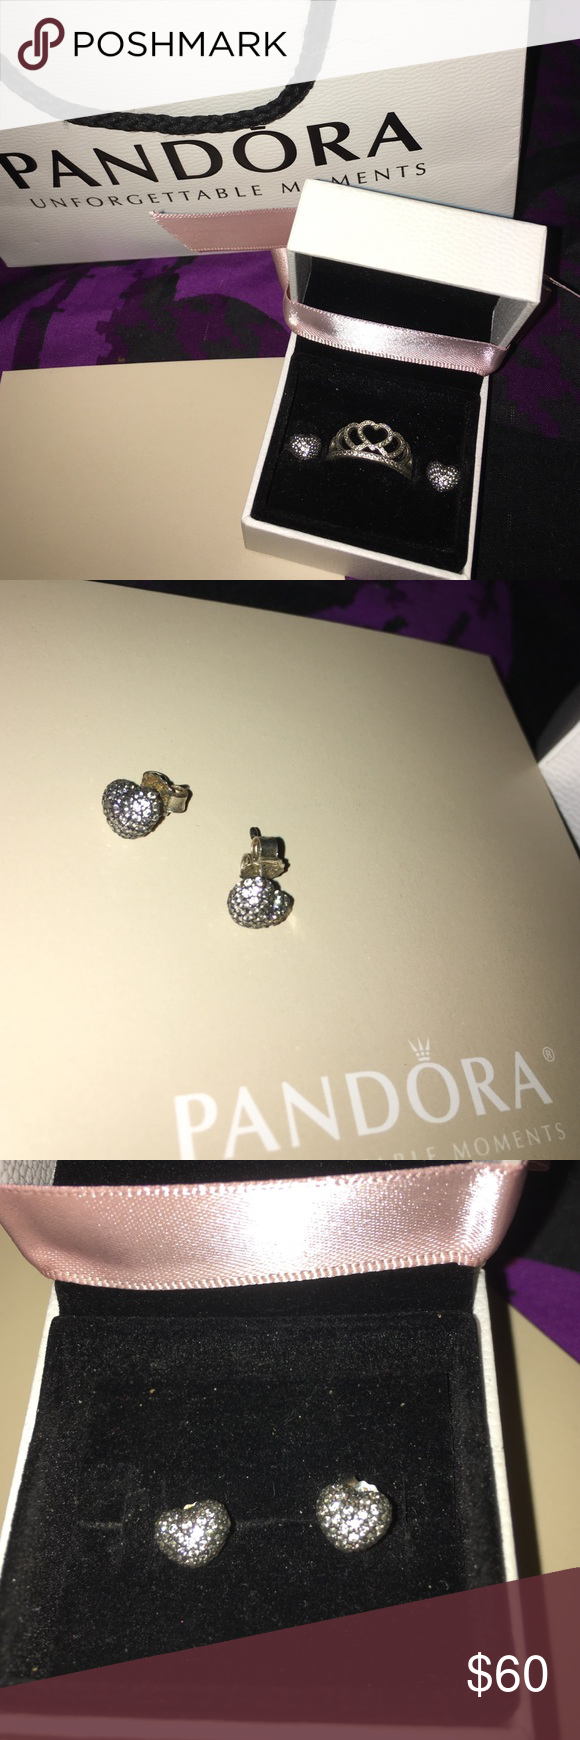 Pandora heart earings and ring w/ orig. packaging Gently used and come with original packaging. Ring is size 8 made with sterling silver and cubic zirconia.  Very tiny scratch on one side. Orig. Other than that both good condition. Earings made with same material. Orig. price of ring-$60, earings-$60 Pandora Jewelry Rings